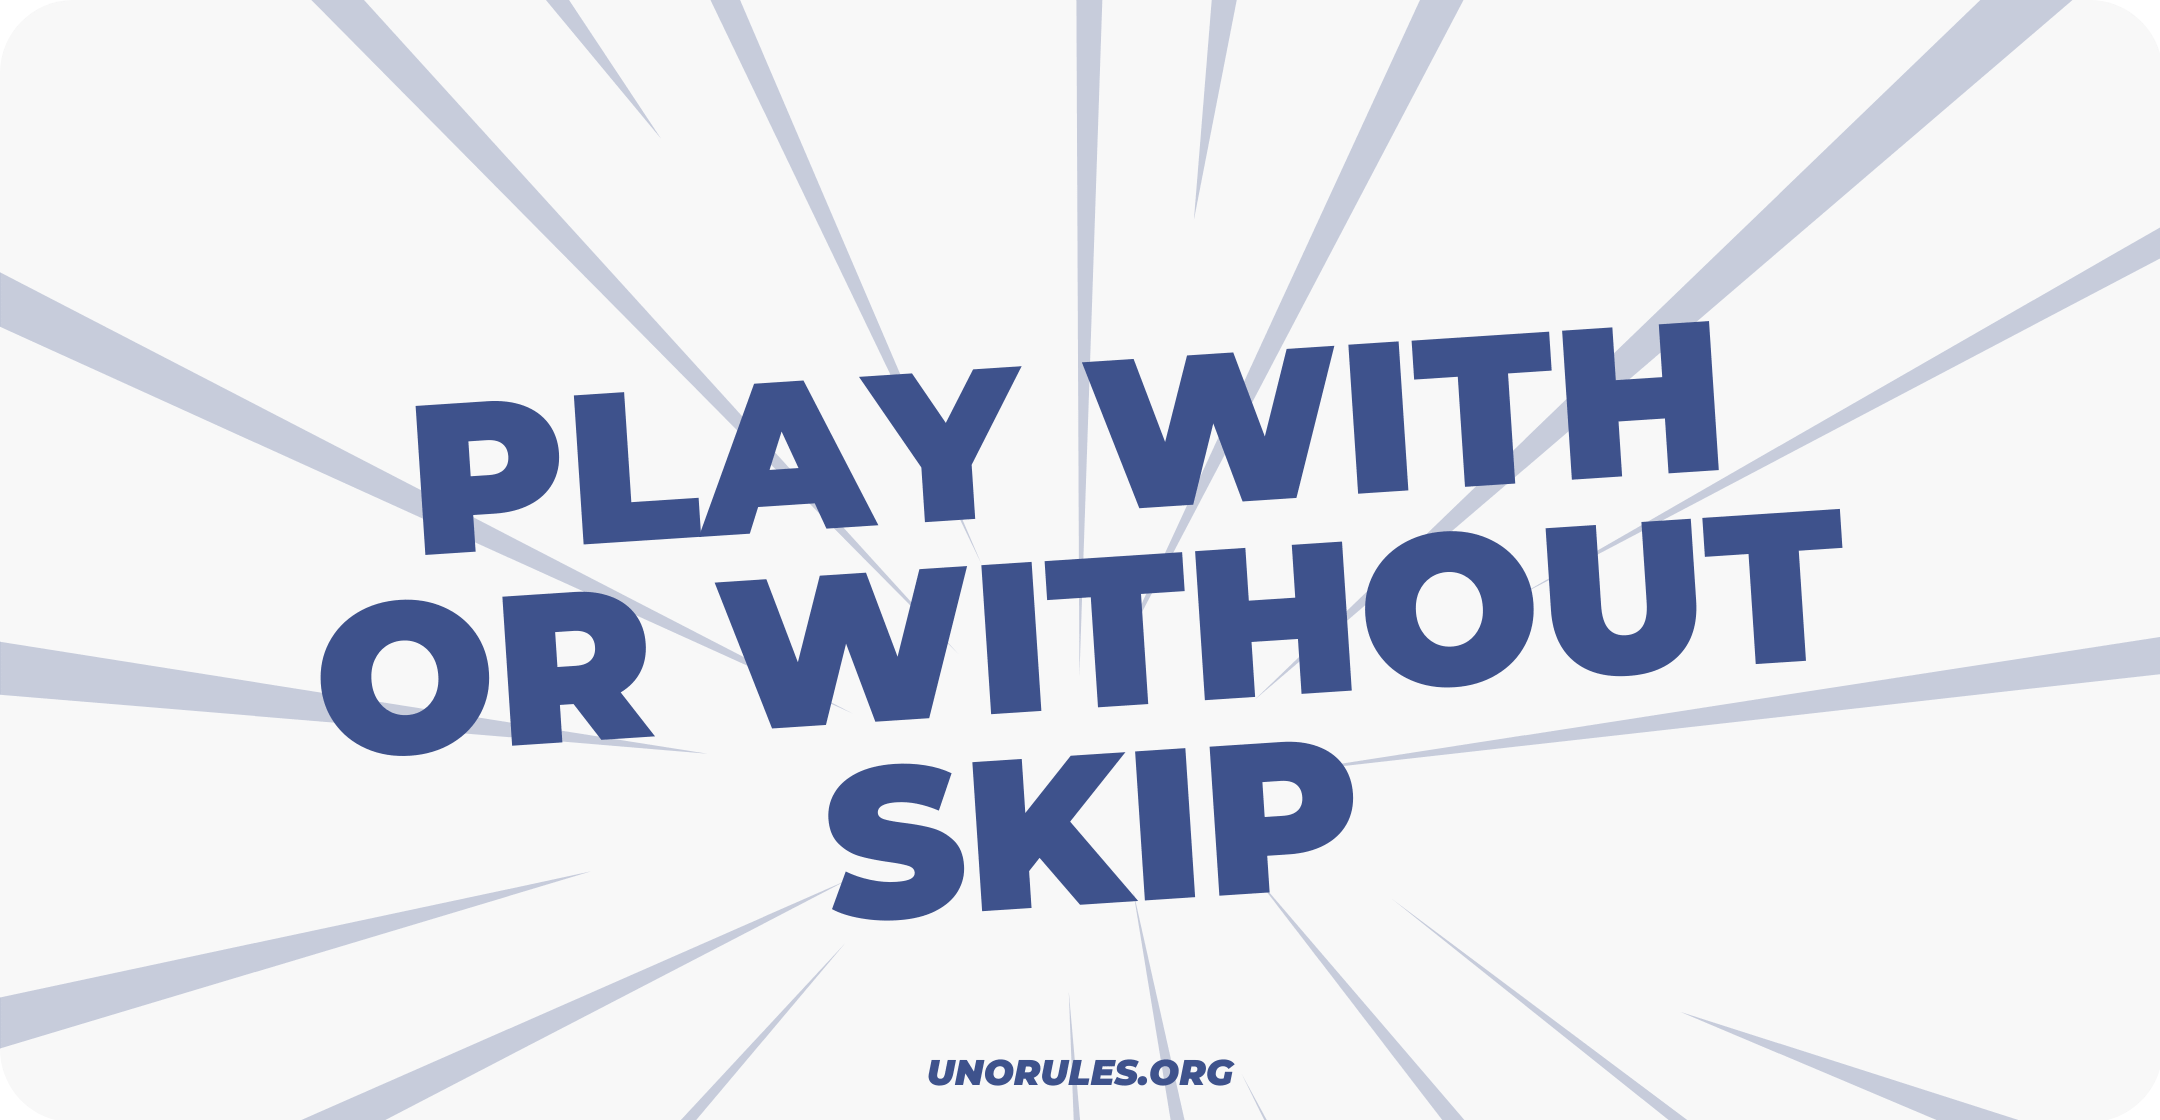 Play with or without Skip